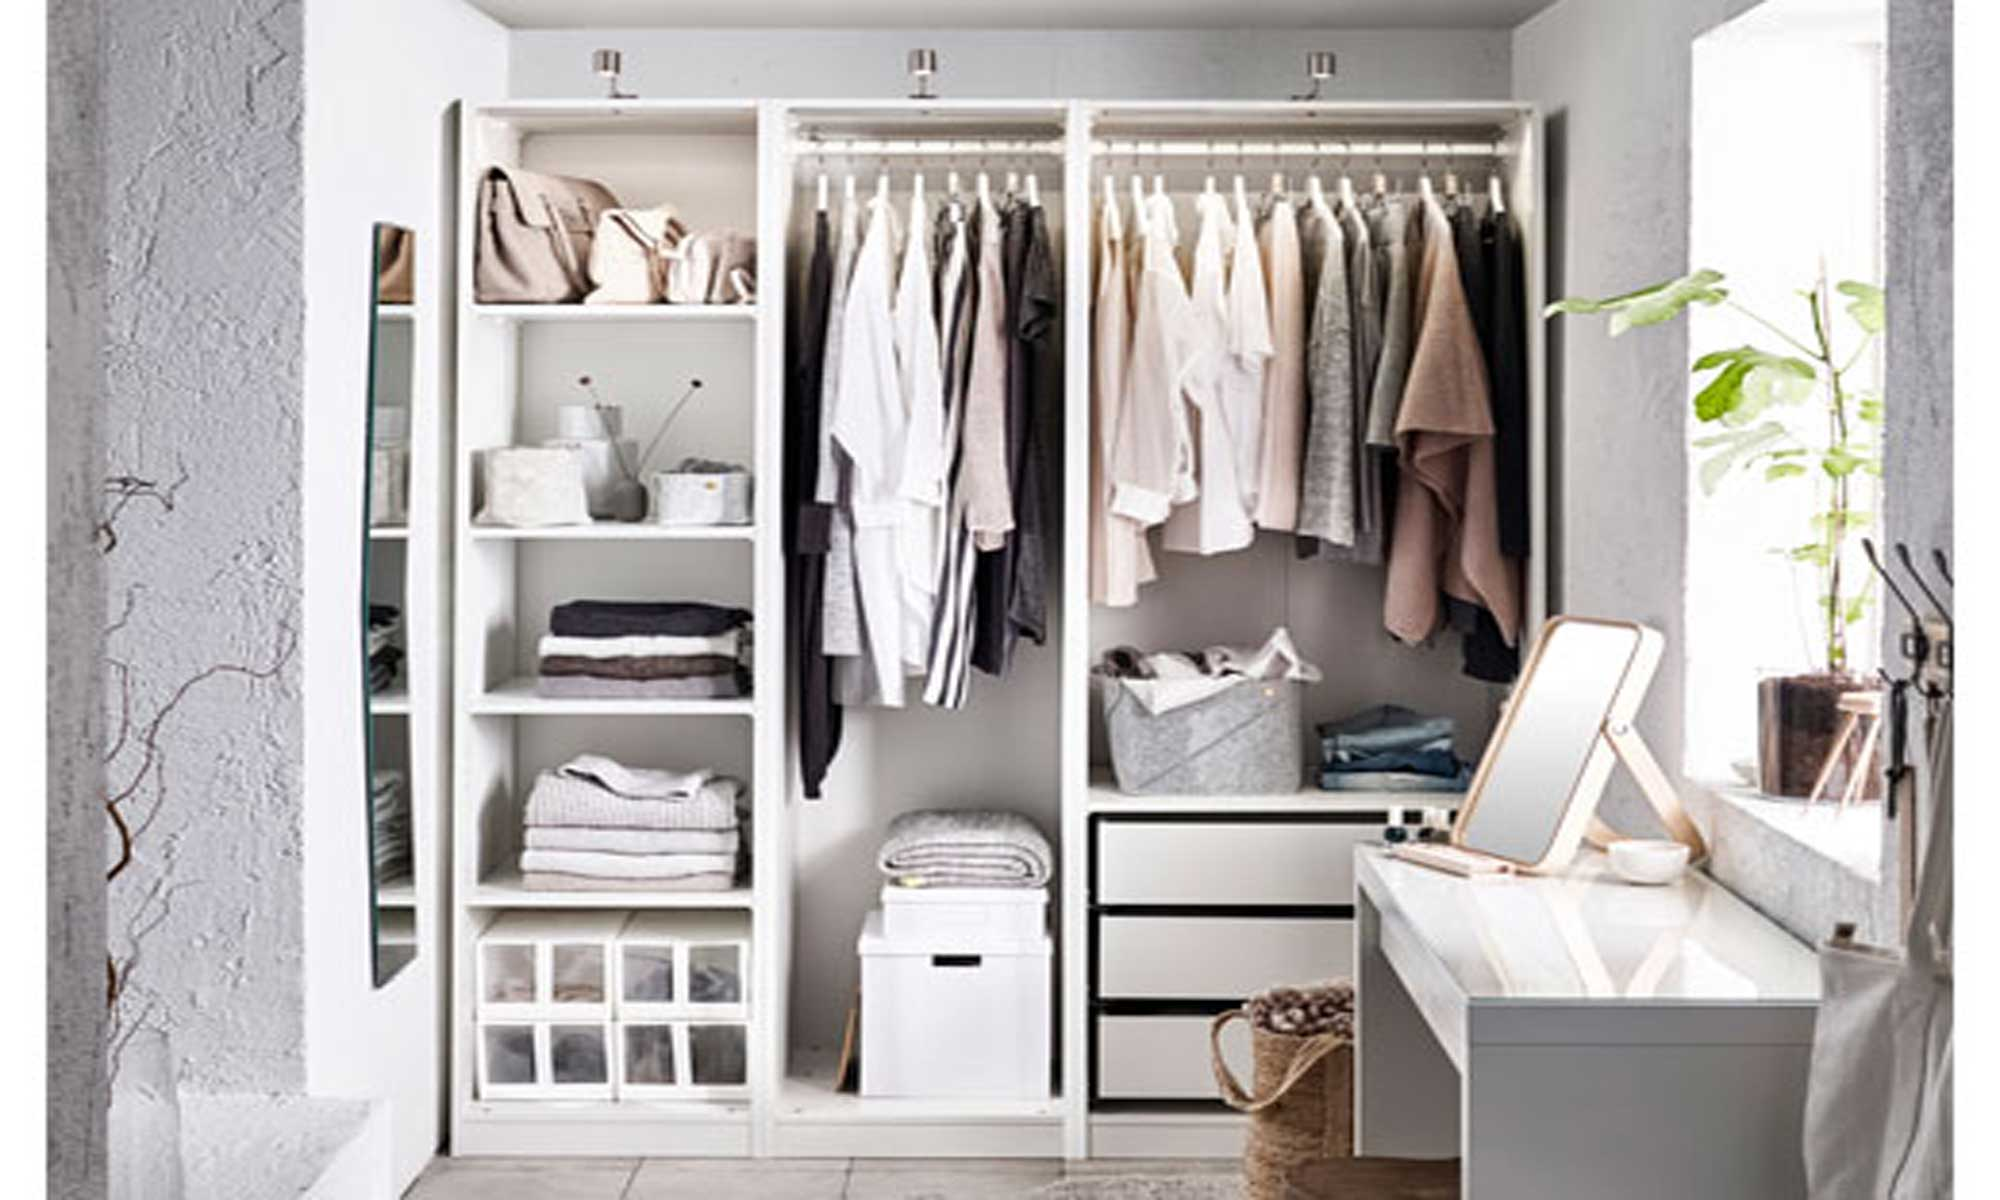 dressing-ouvert-pax-ikea-montagedemeuble